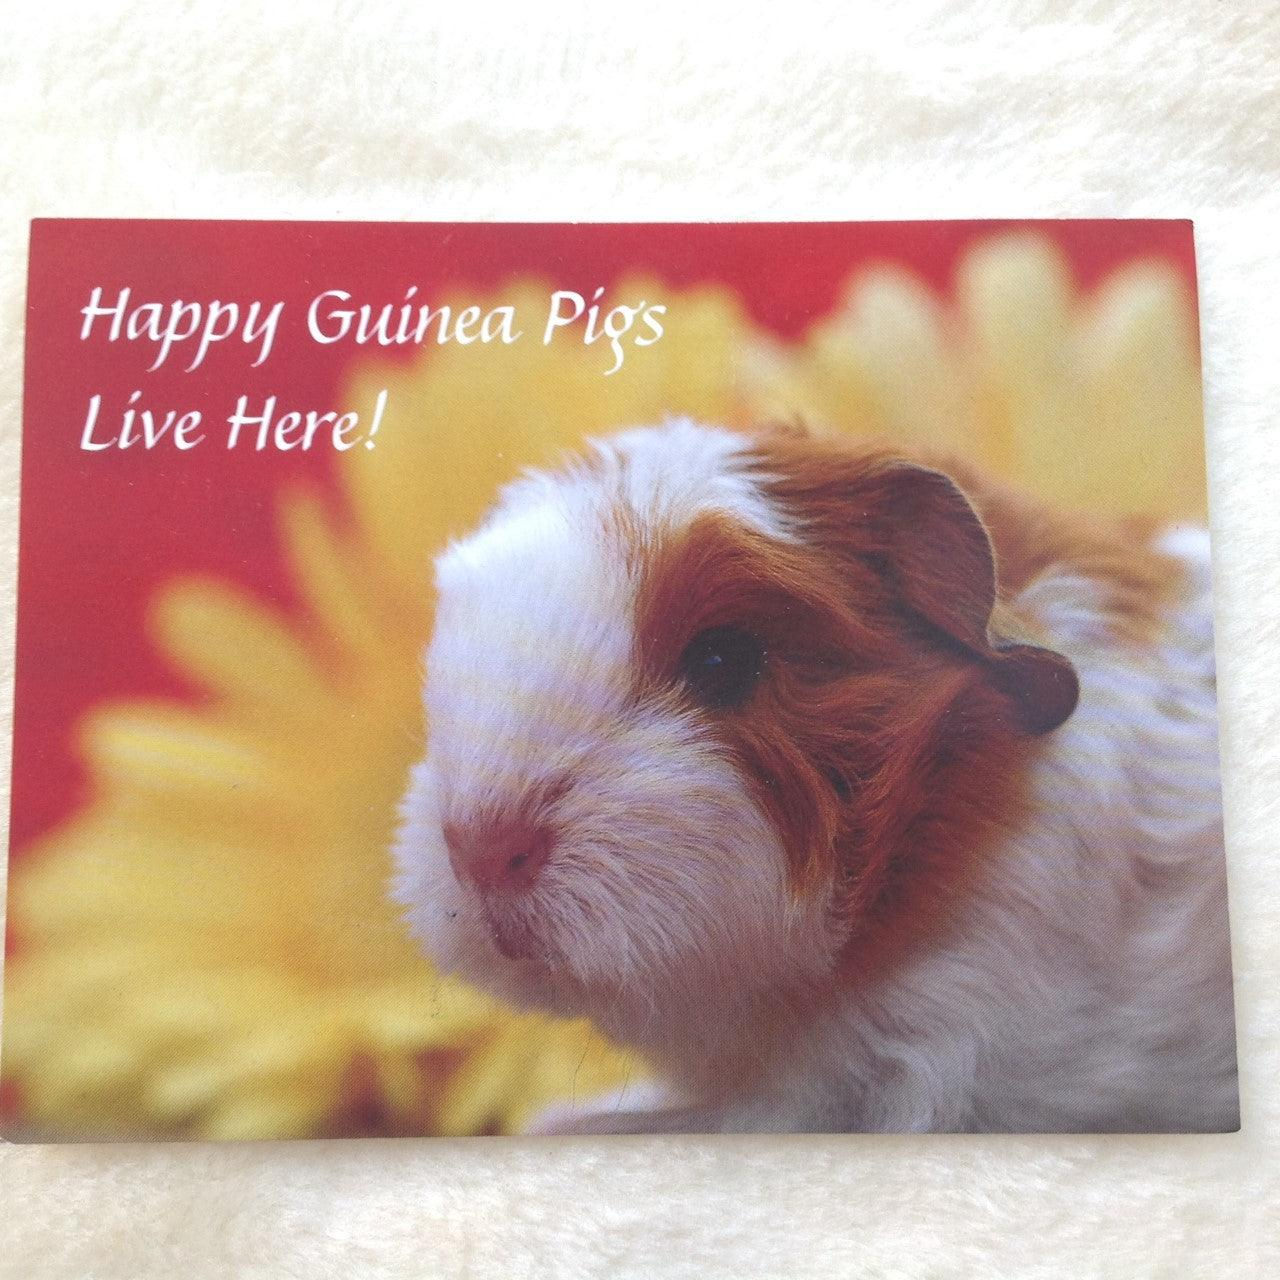 Exclusive Happy Guinea Pig Live Here postcards